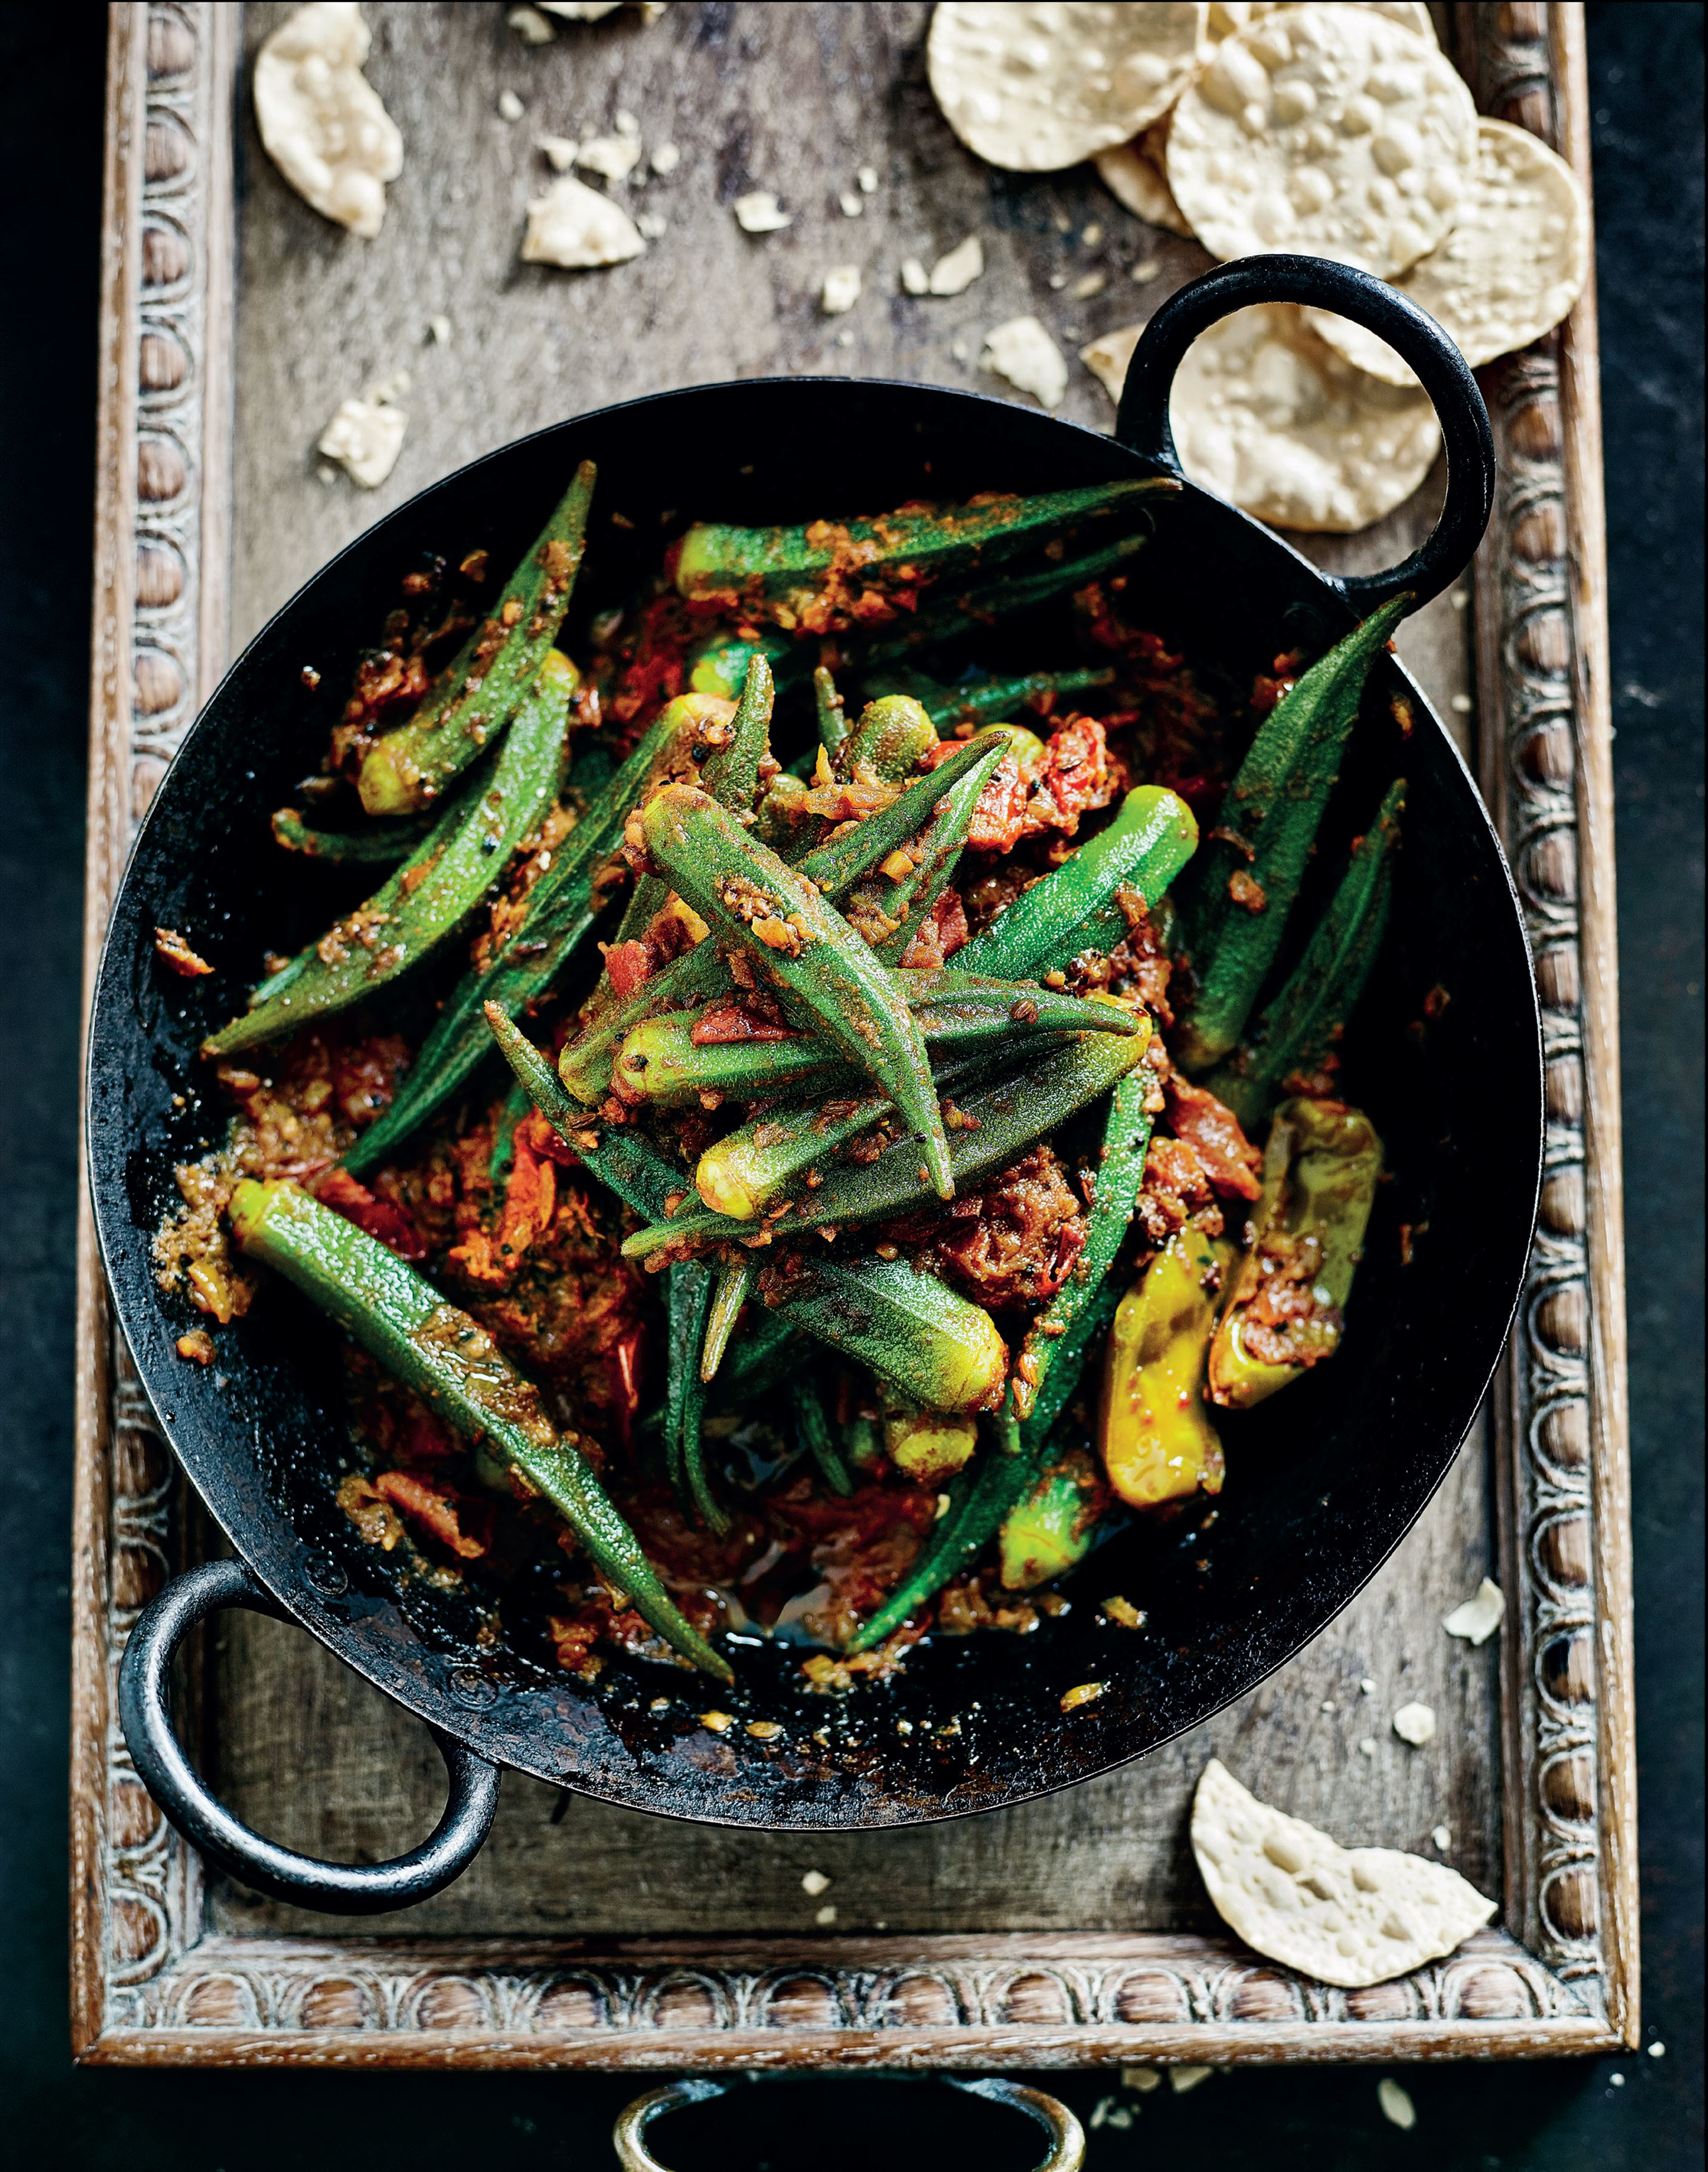 Four seed-spiced okra with tomatoes